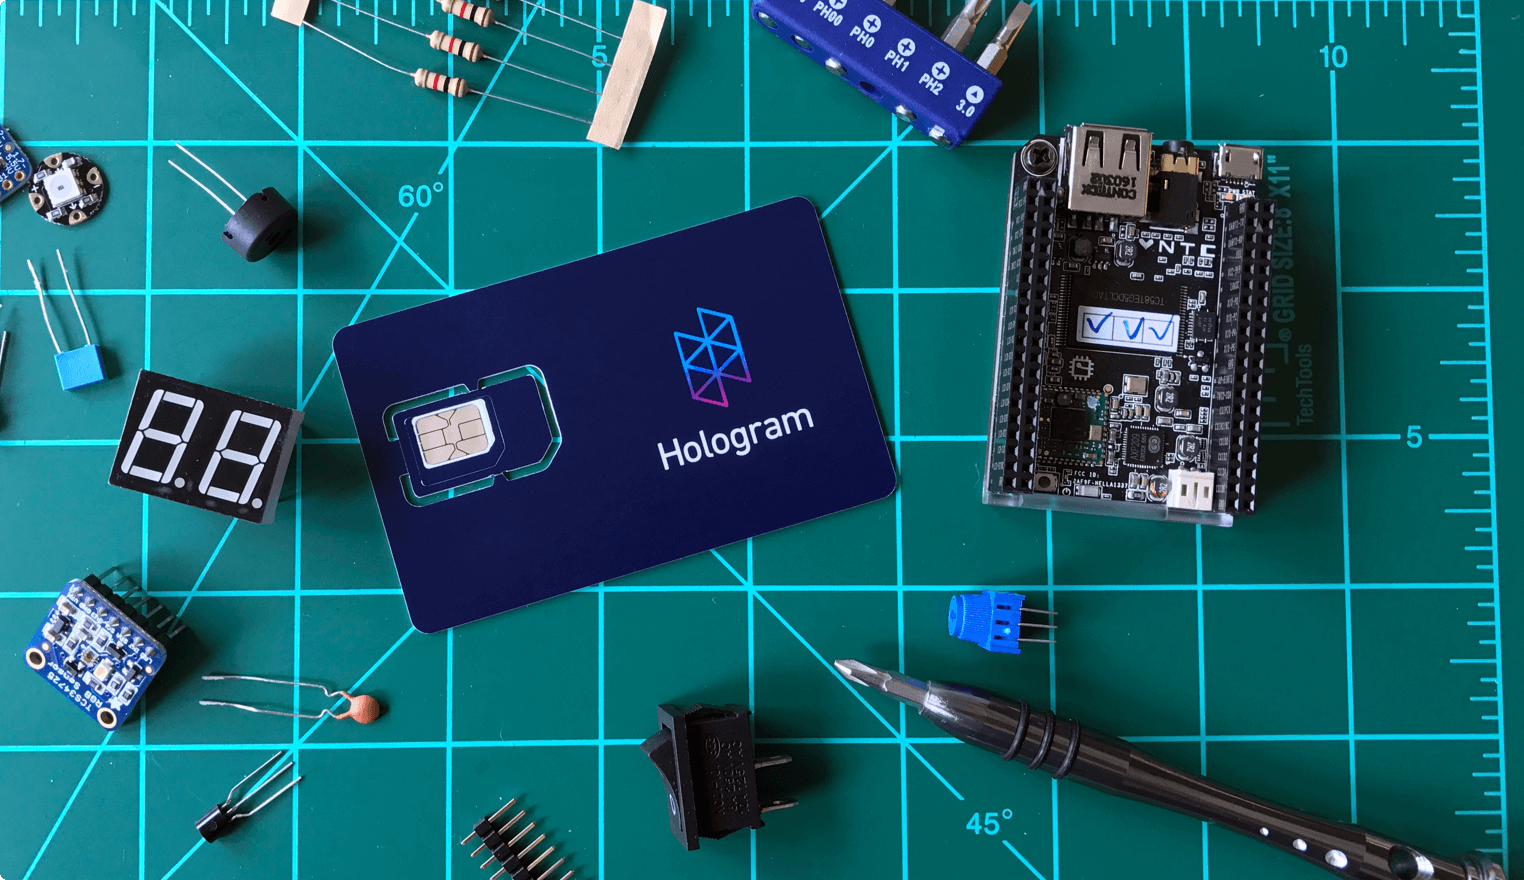 Maker Pricing Hologram Free Circuits Electronics Projects Start With A Sim And Data